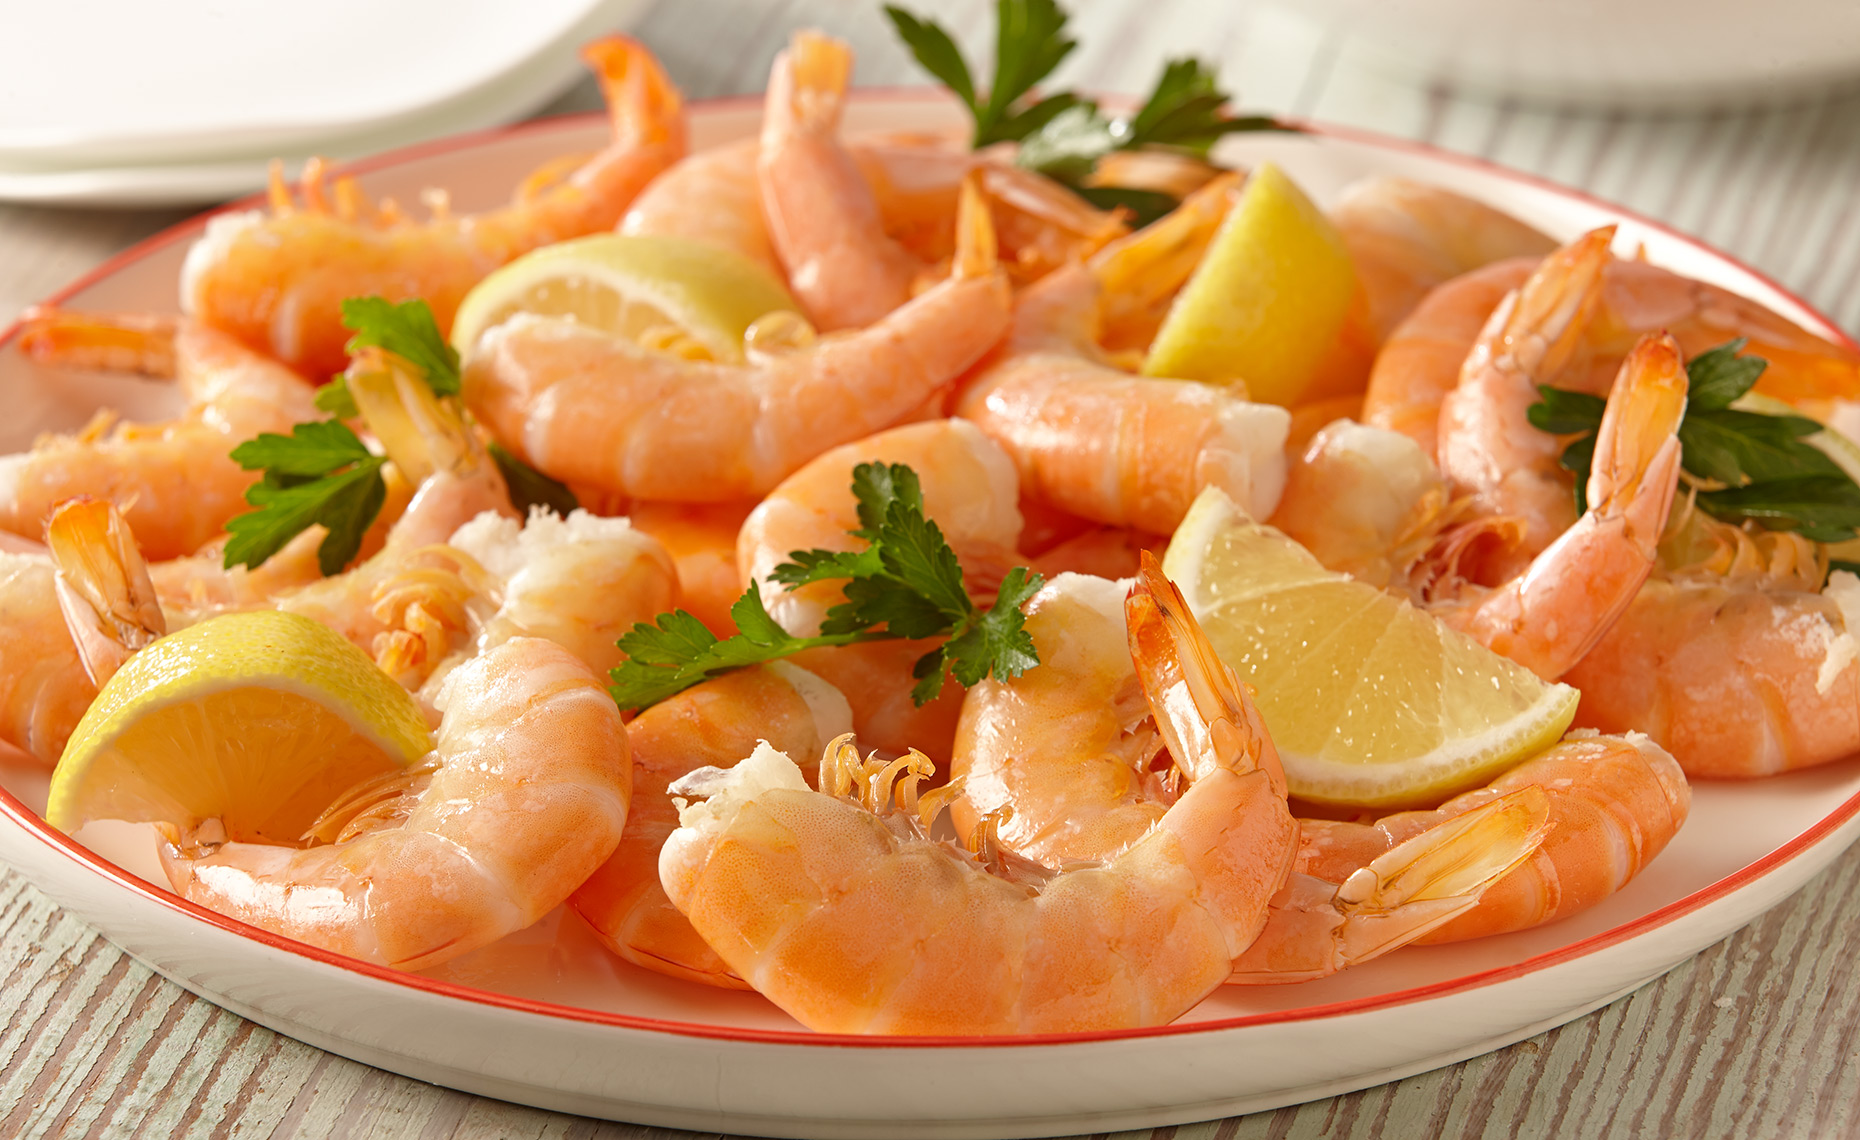 Food Photographer, Seafood Photography | Pohuski Studios,  Boiled Shrimp